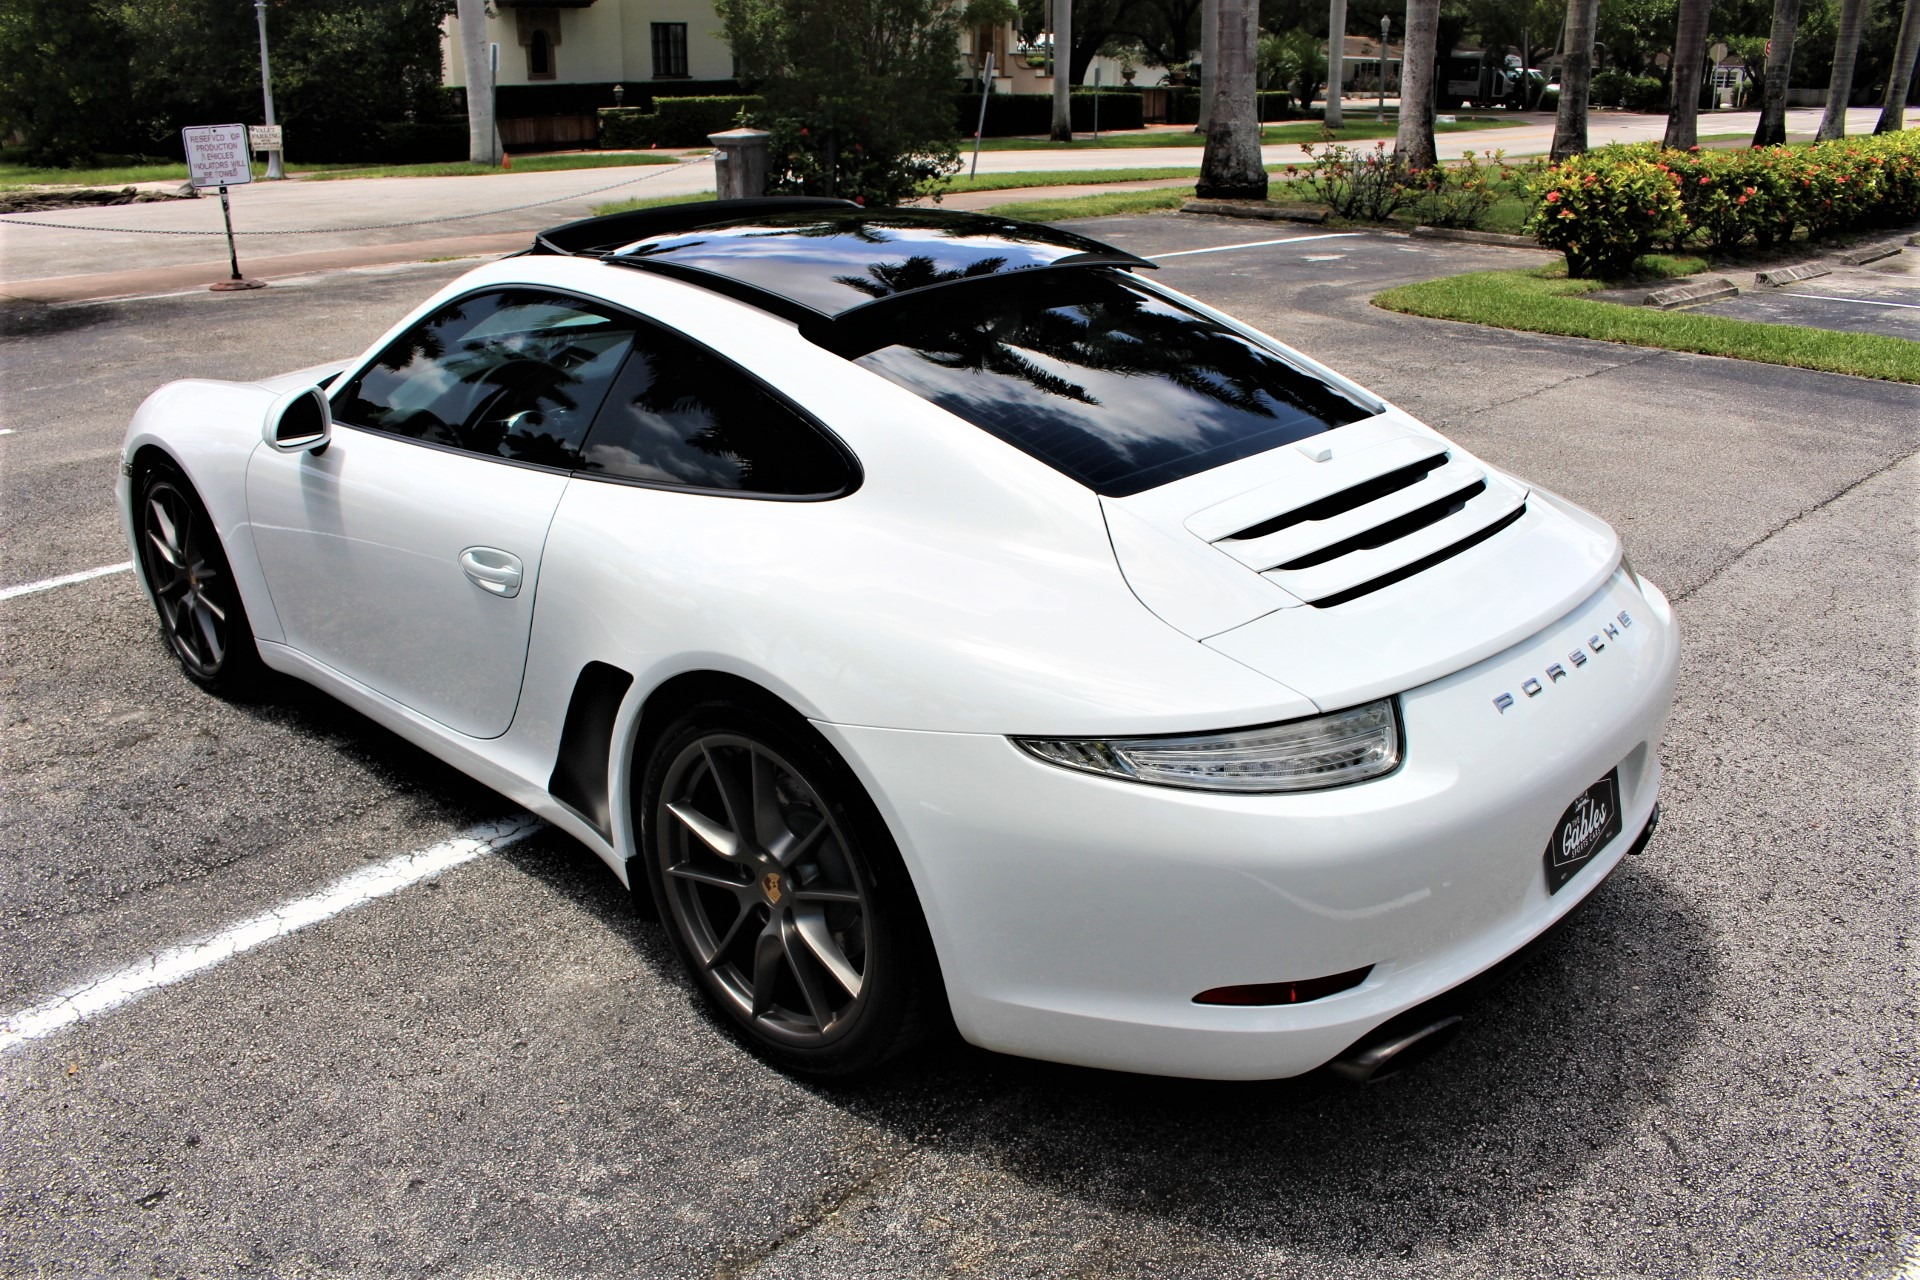 Used 2013 Porsche 911 Carrera for sale Sold at The Gables Sports Cars in Miami FL 33146 2